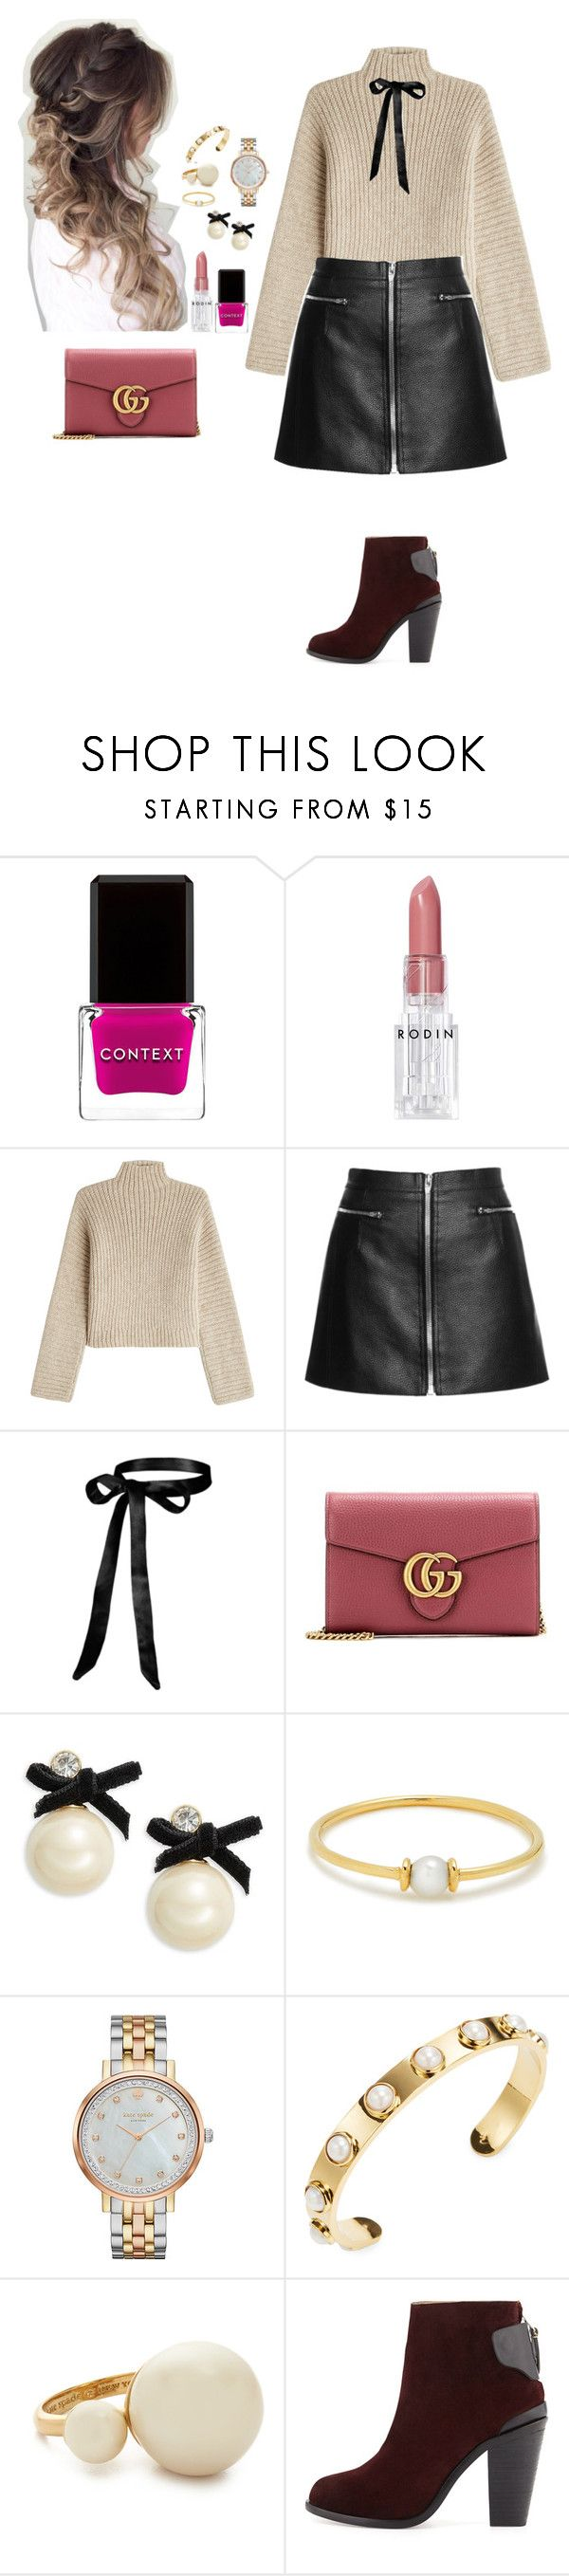 """""""Untitled #1415"""" by lexiaf on Polyvore featuring Context, Rodin, Rosetta Getty, Gucci, Kate Spade, Anissa Kermiche and rag & bone"""